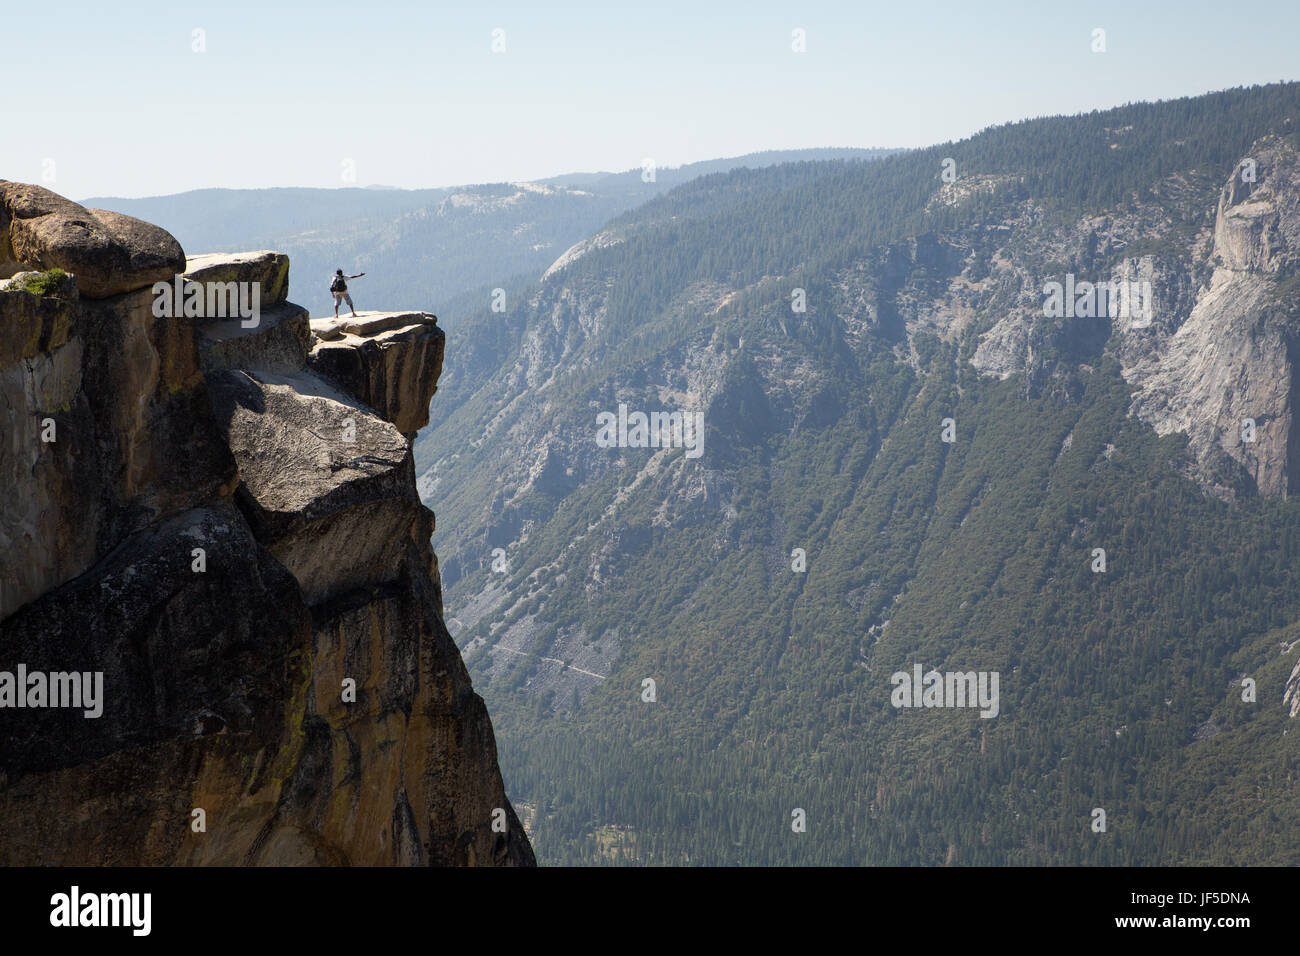 A visitor to Yosemite National Park stands on a rock ledge at Taft Point. This ledge, at an elevation of about 7,500 - Stock Image